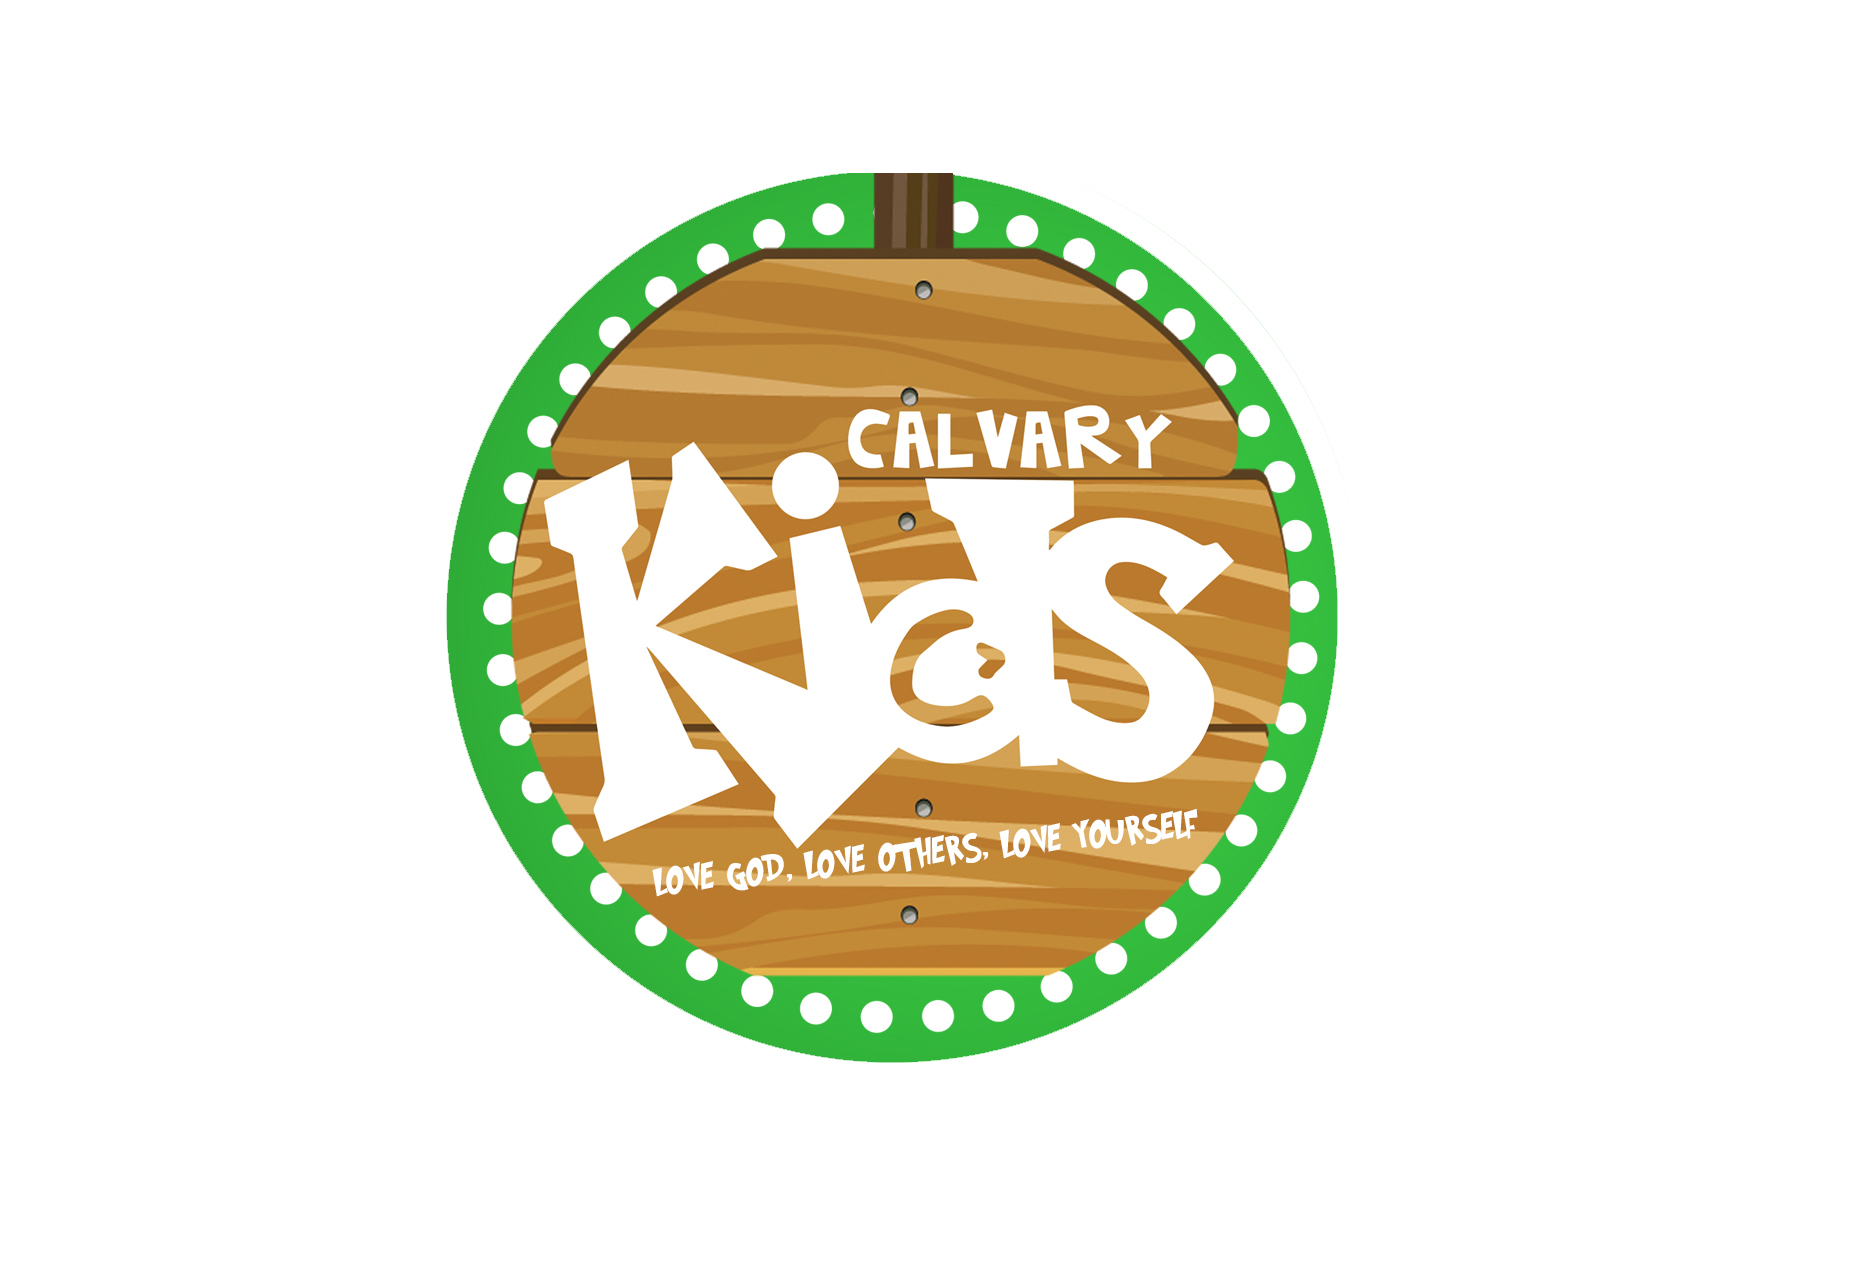 Calvarykidslogo woodbackground